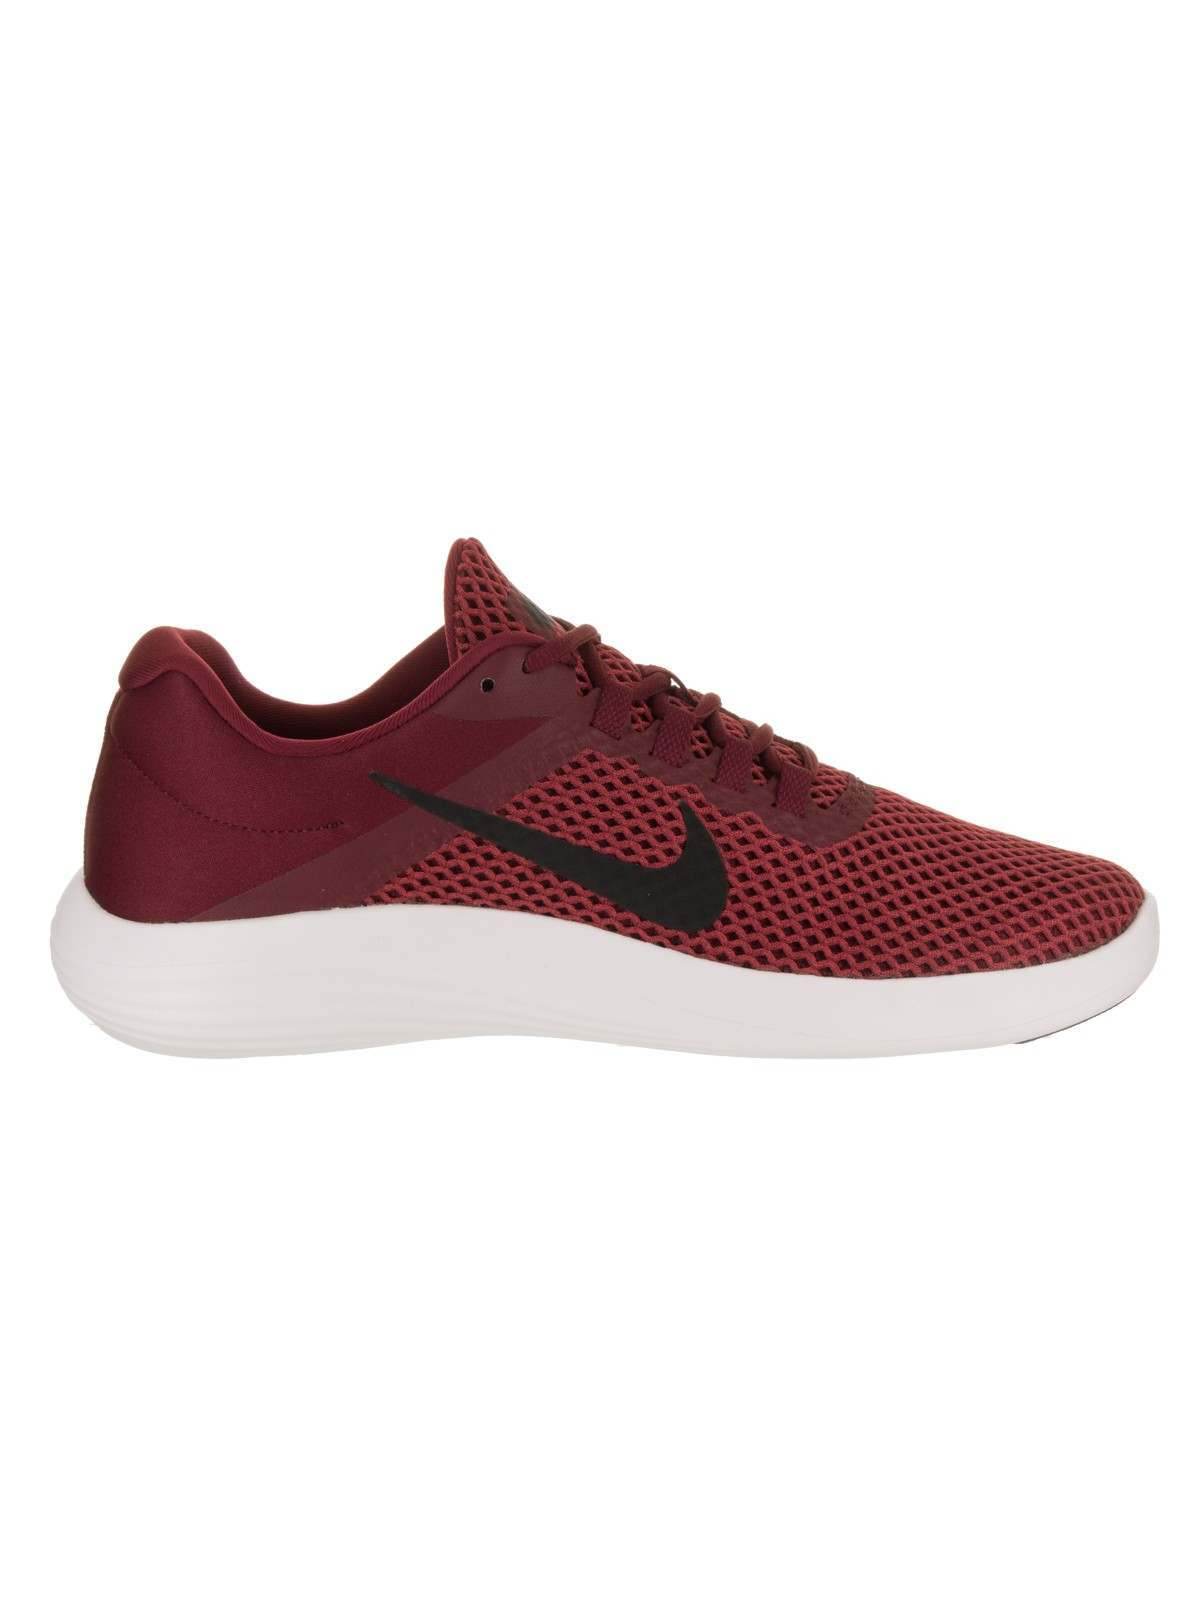 Gentlemen/Ladies-Nike Gentlemen/Ladies-Nike Gentlemen/Ladies-Nike Men's Lunarconverge 2 Running Shoe-economical and practical eaa8ee